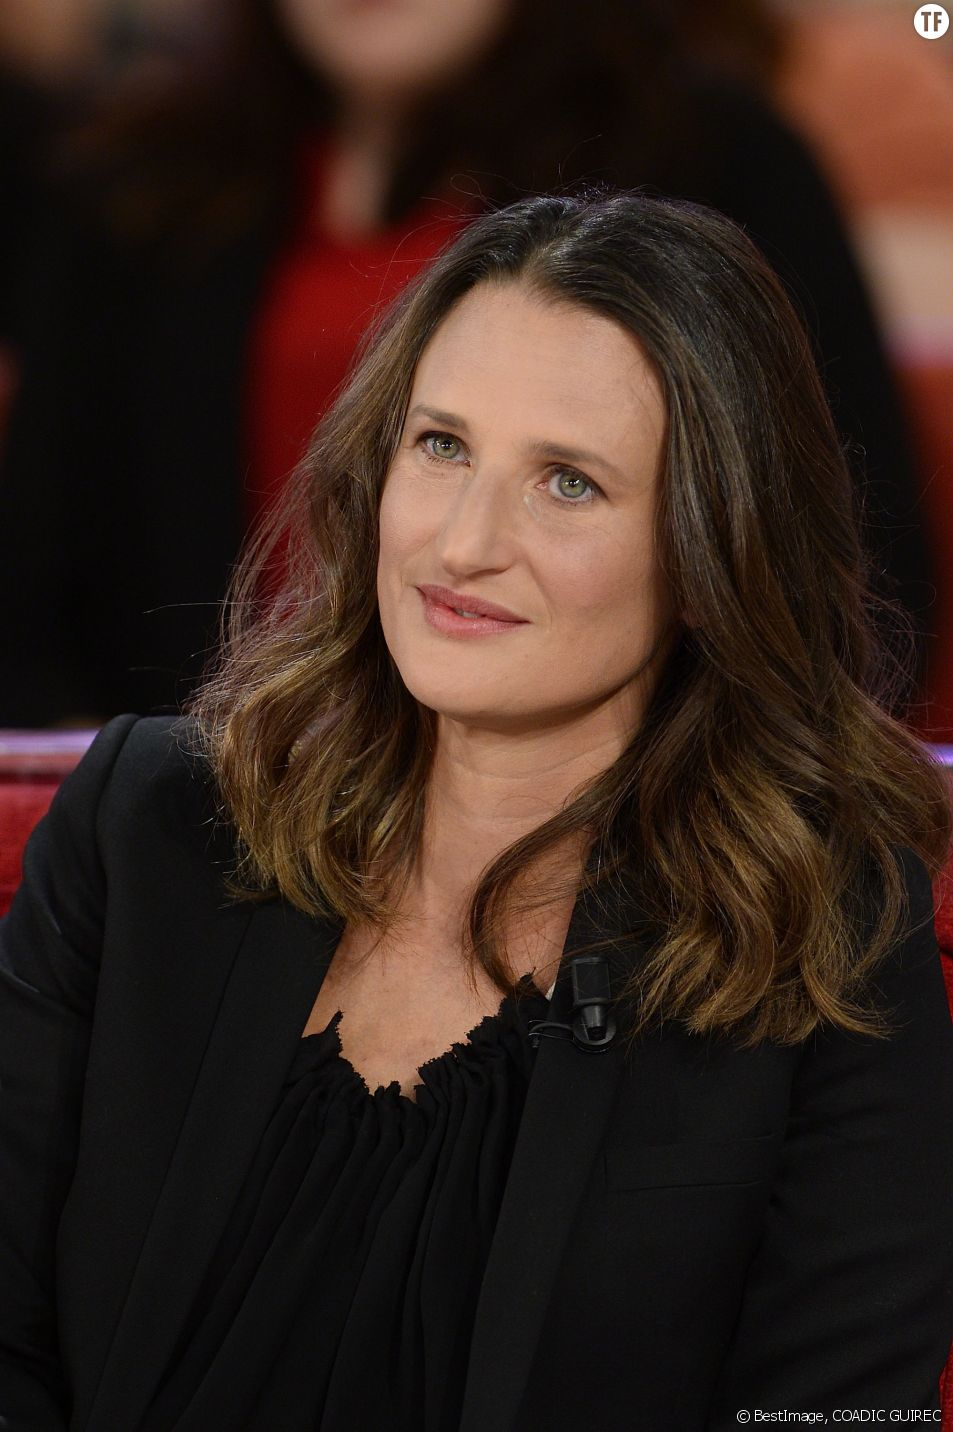 L'actrice Camille Cottin